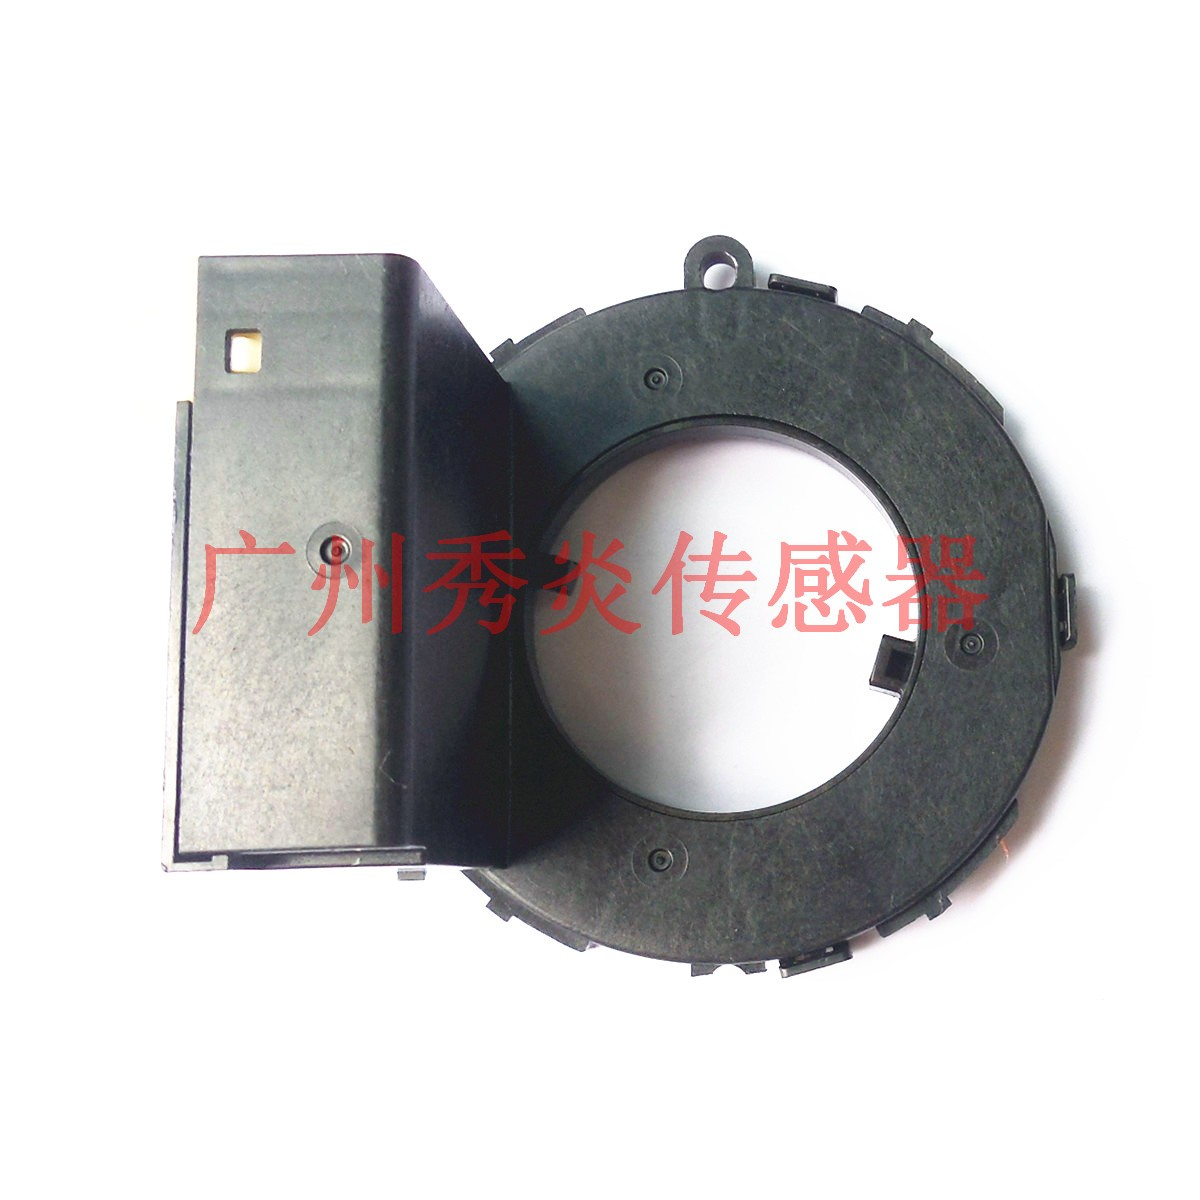 For Toyota steering wheel steering Angle sensor,89245-0R020,892450R020,480-1NB42,4801N42